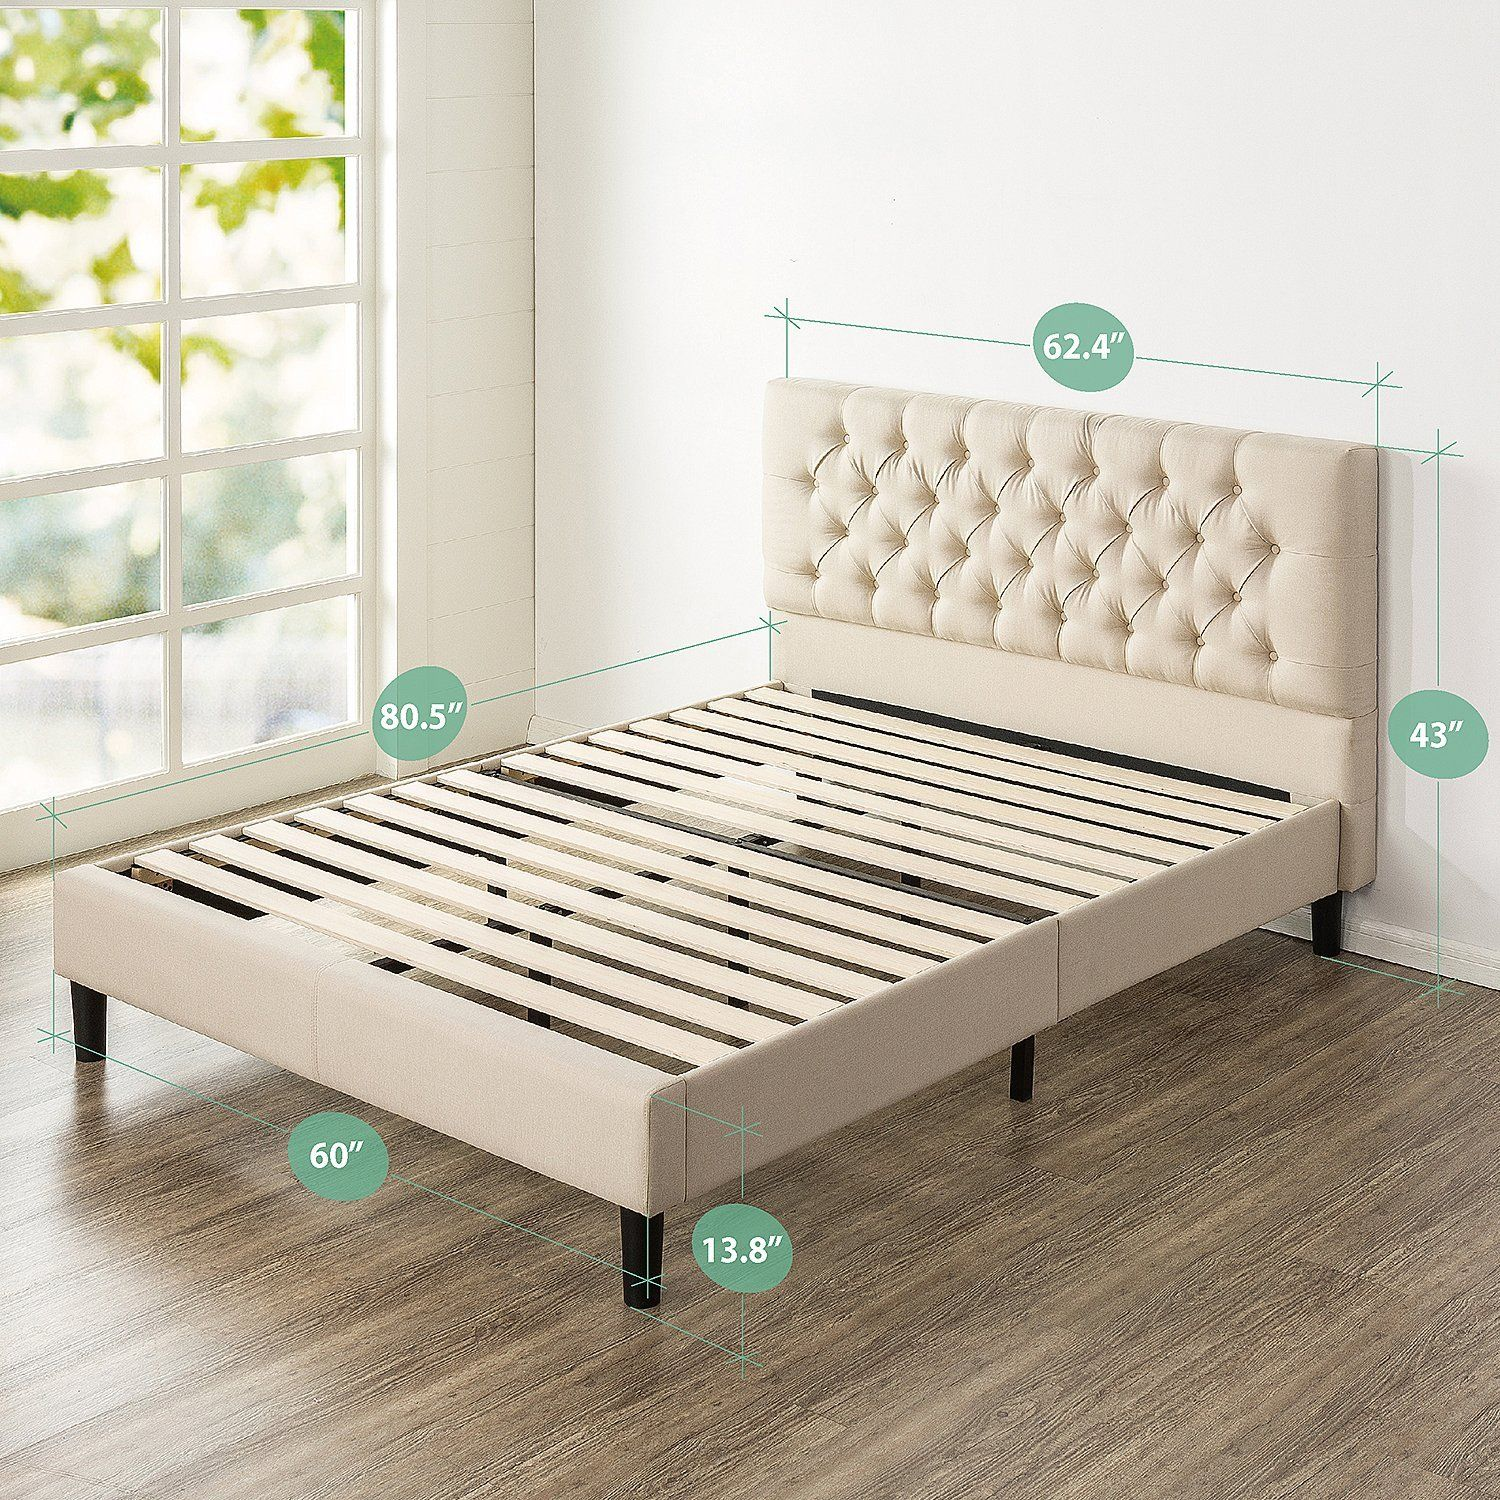 Amazon Com Zinus Upholstered Modern Classic Tufted Platform Bed Queen Home Kitchen With Images Platform Bed Mattress Upholstered Platform Bed Platform Bed